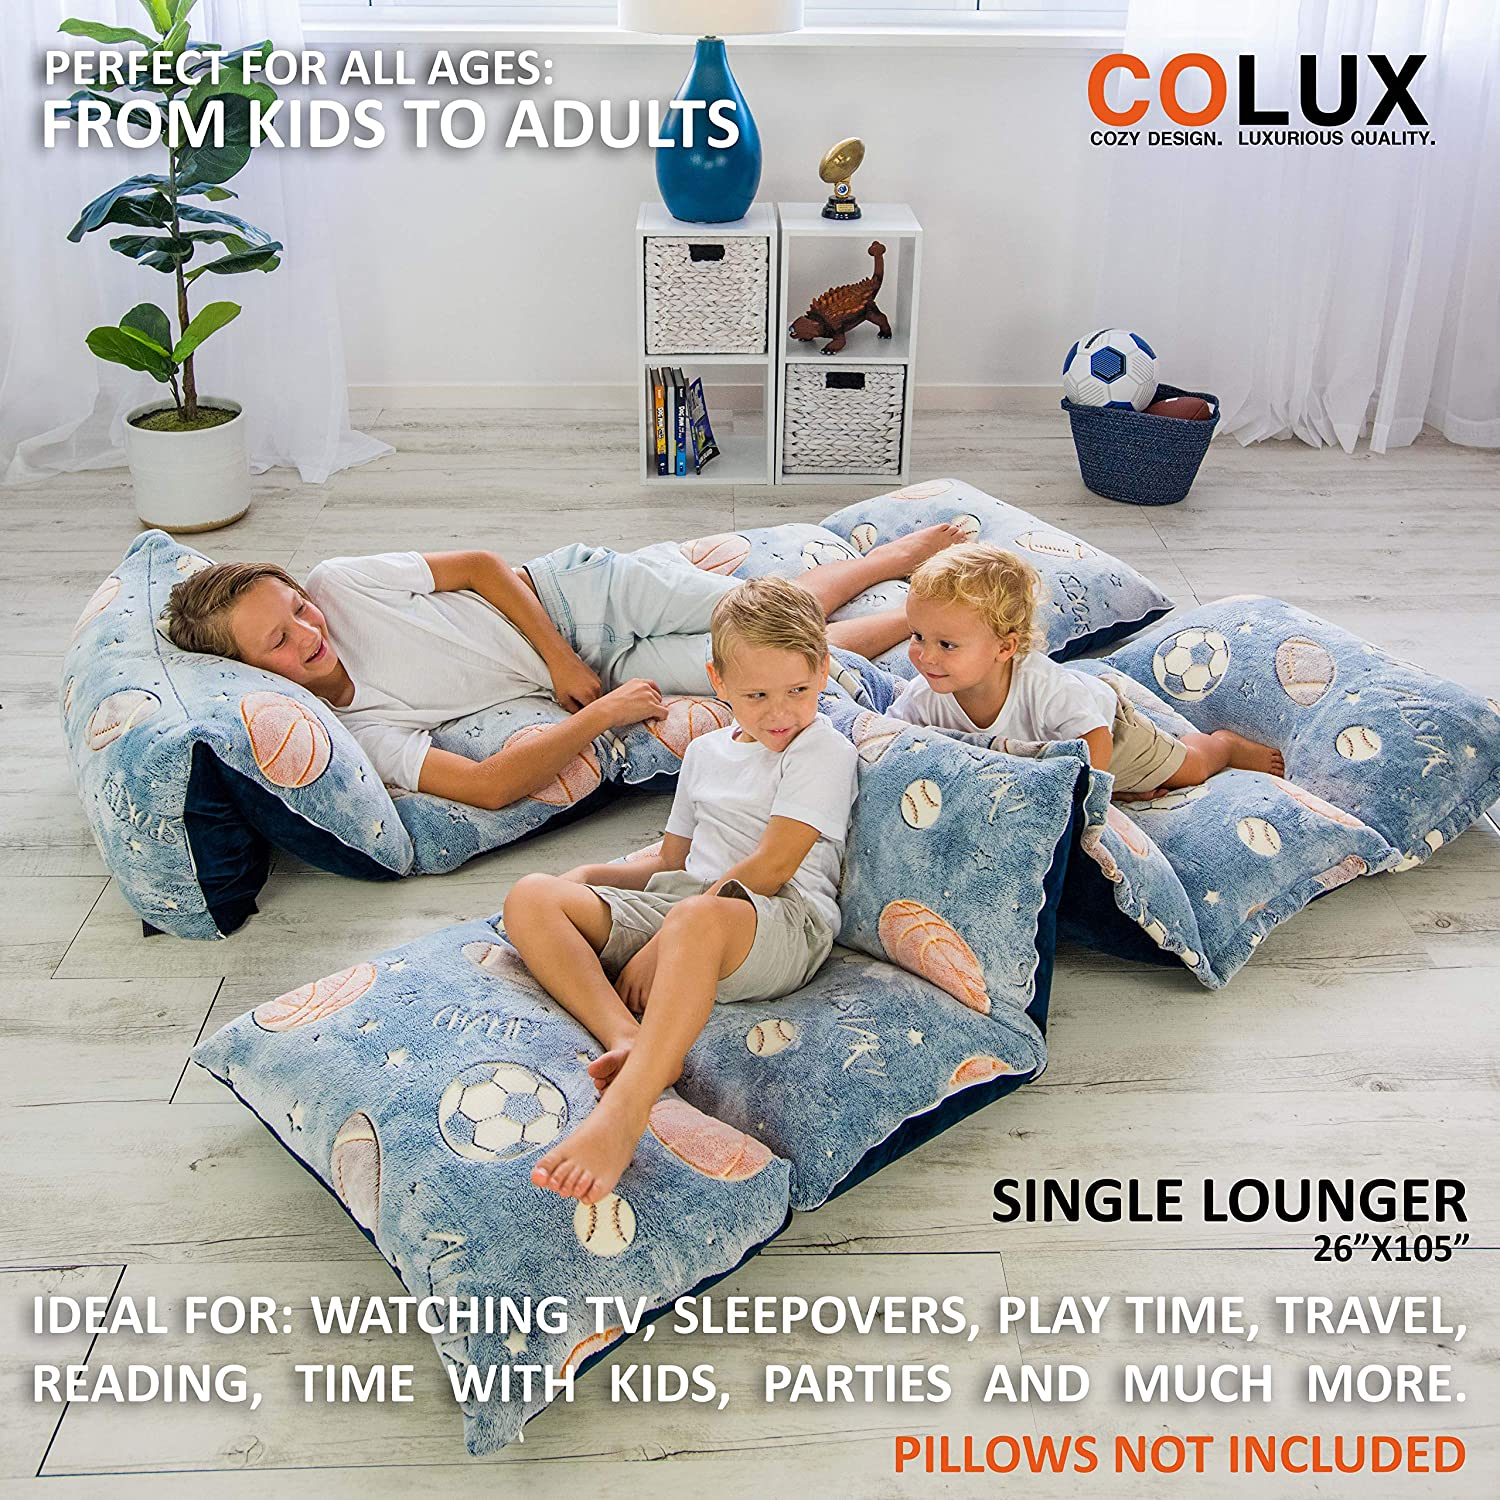 kids couch teen body pillow loungers COVER ONLY COLUX 3 IN 1 Glow in The Dark Floor Pillow COVER for Kids Fold out chair bed boy /& girl pillow beds lounge chairs happy nappers fold out sofa bed